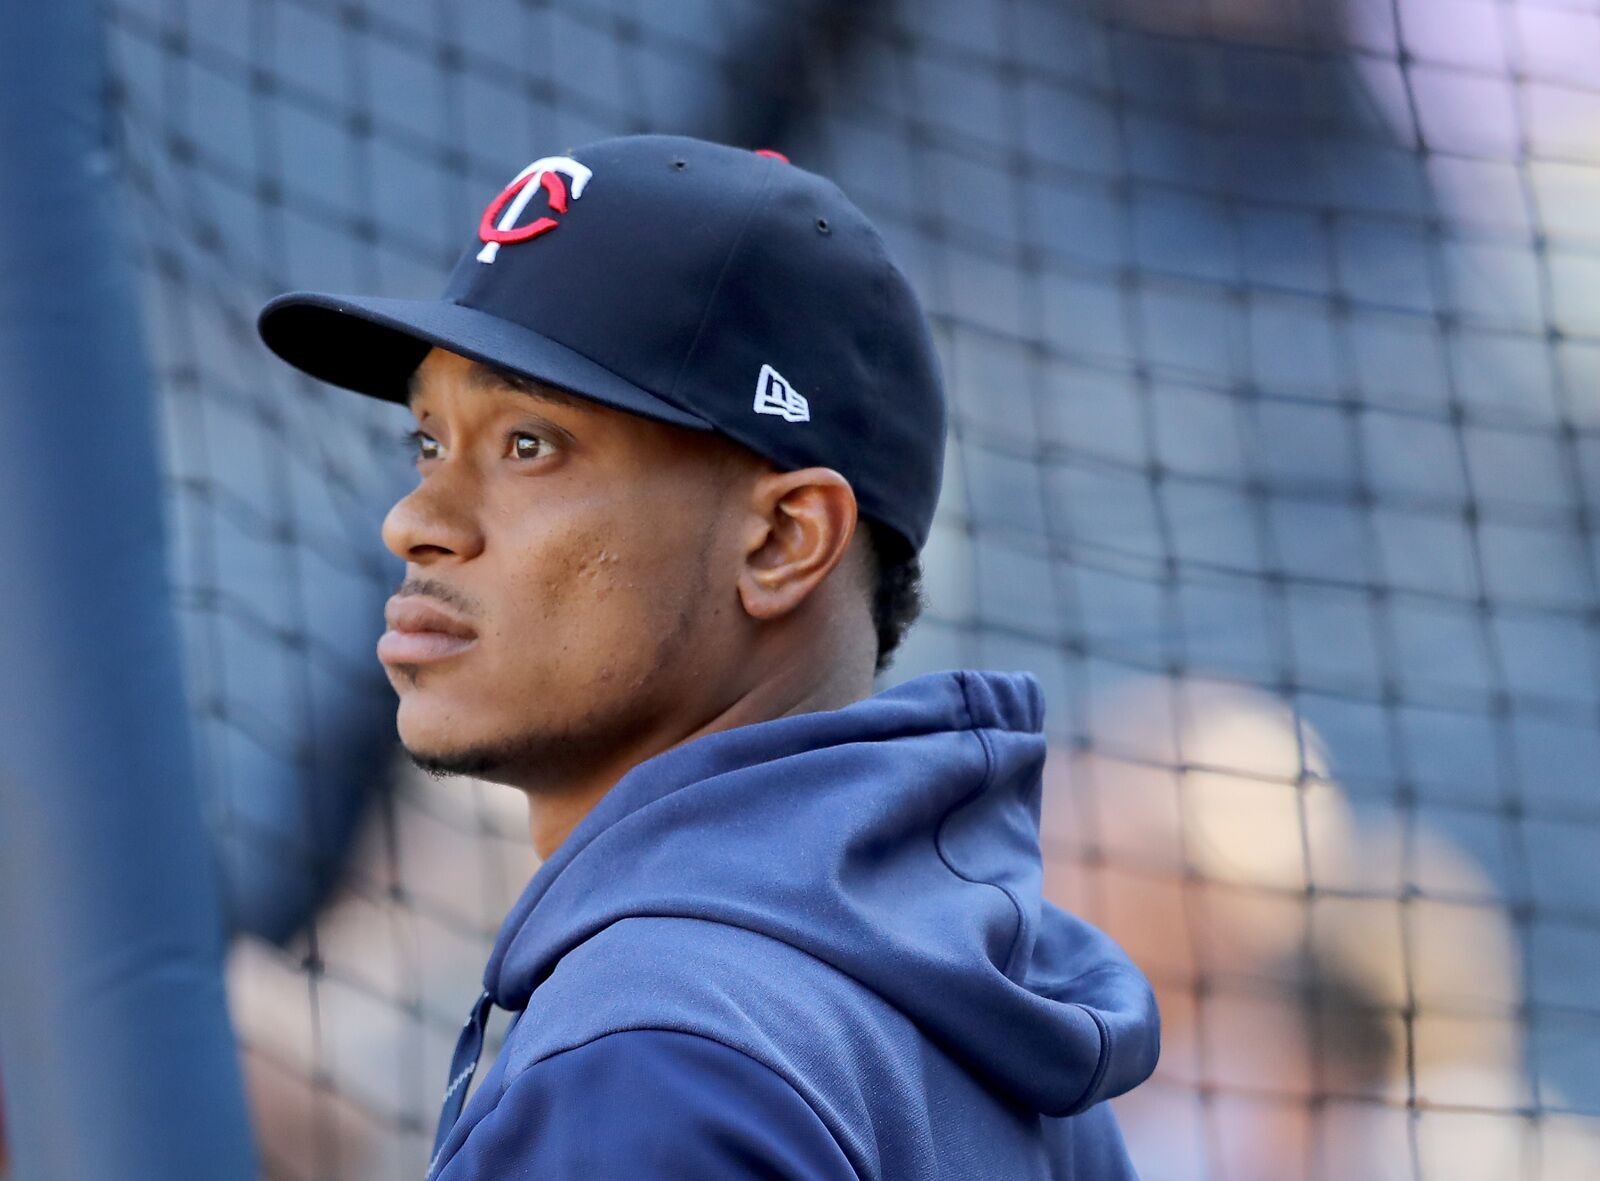 Minnesota Twins: Jorge Polanco undergoes surgery on ankle